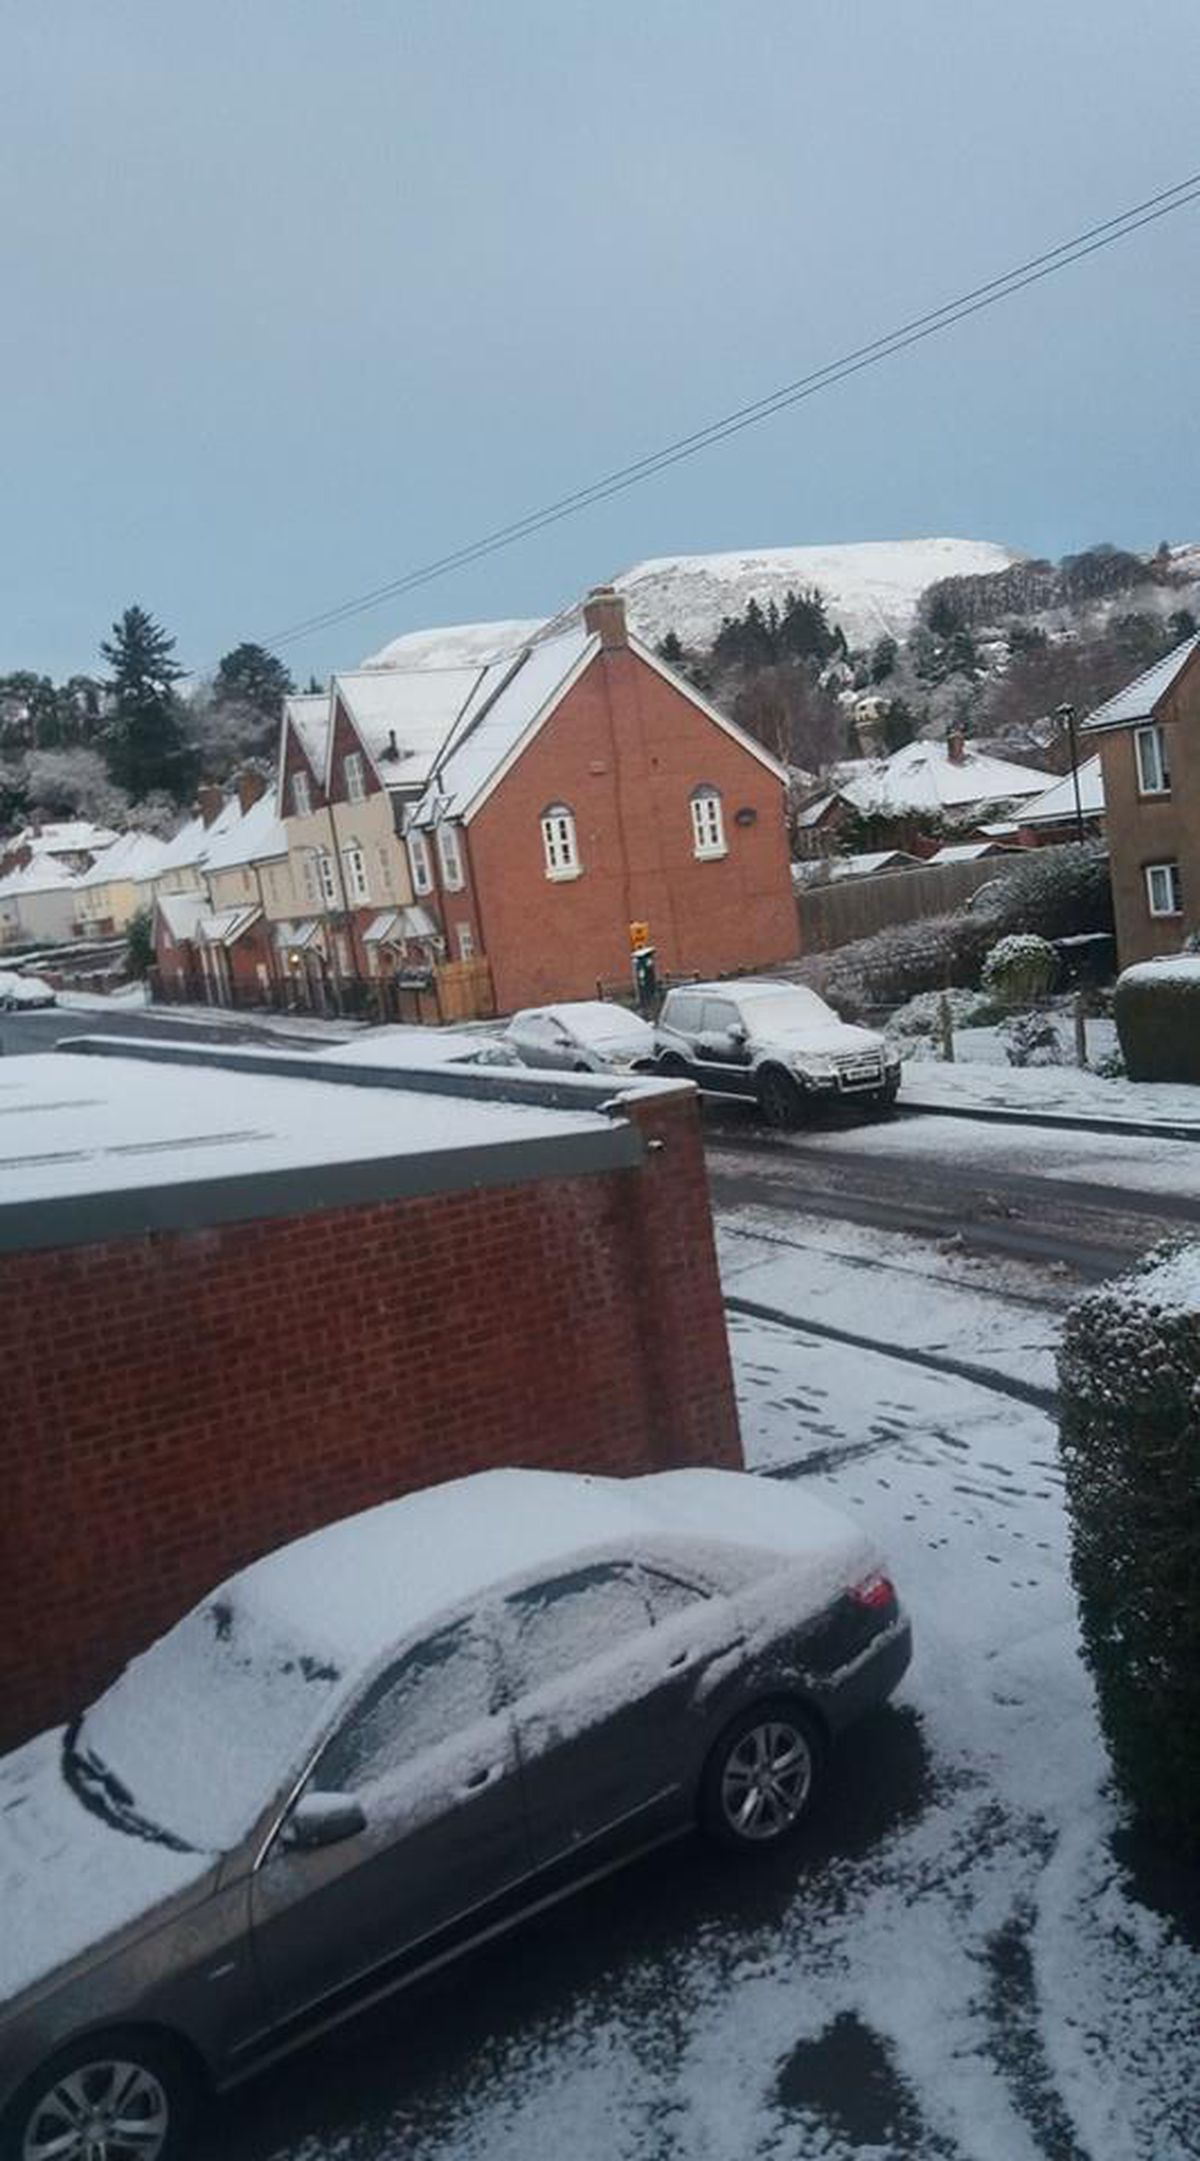 Michael Georgiou sent us this picture from Church Stretton